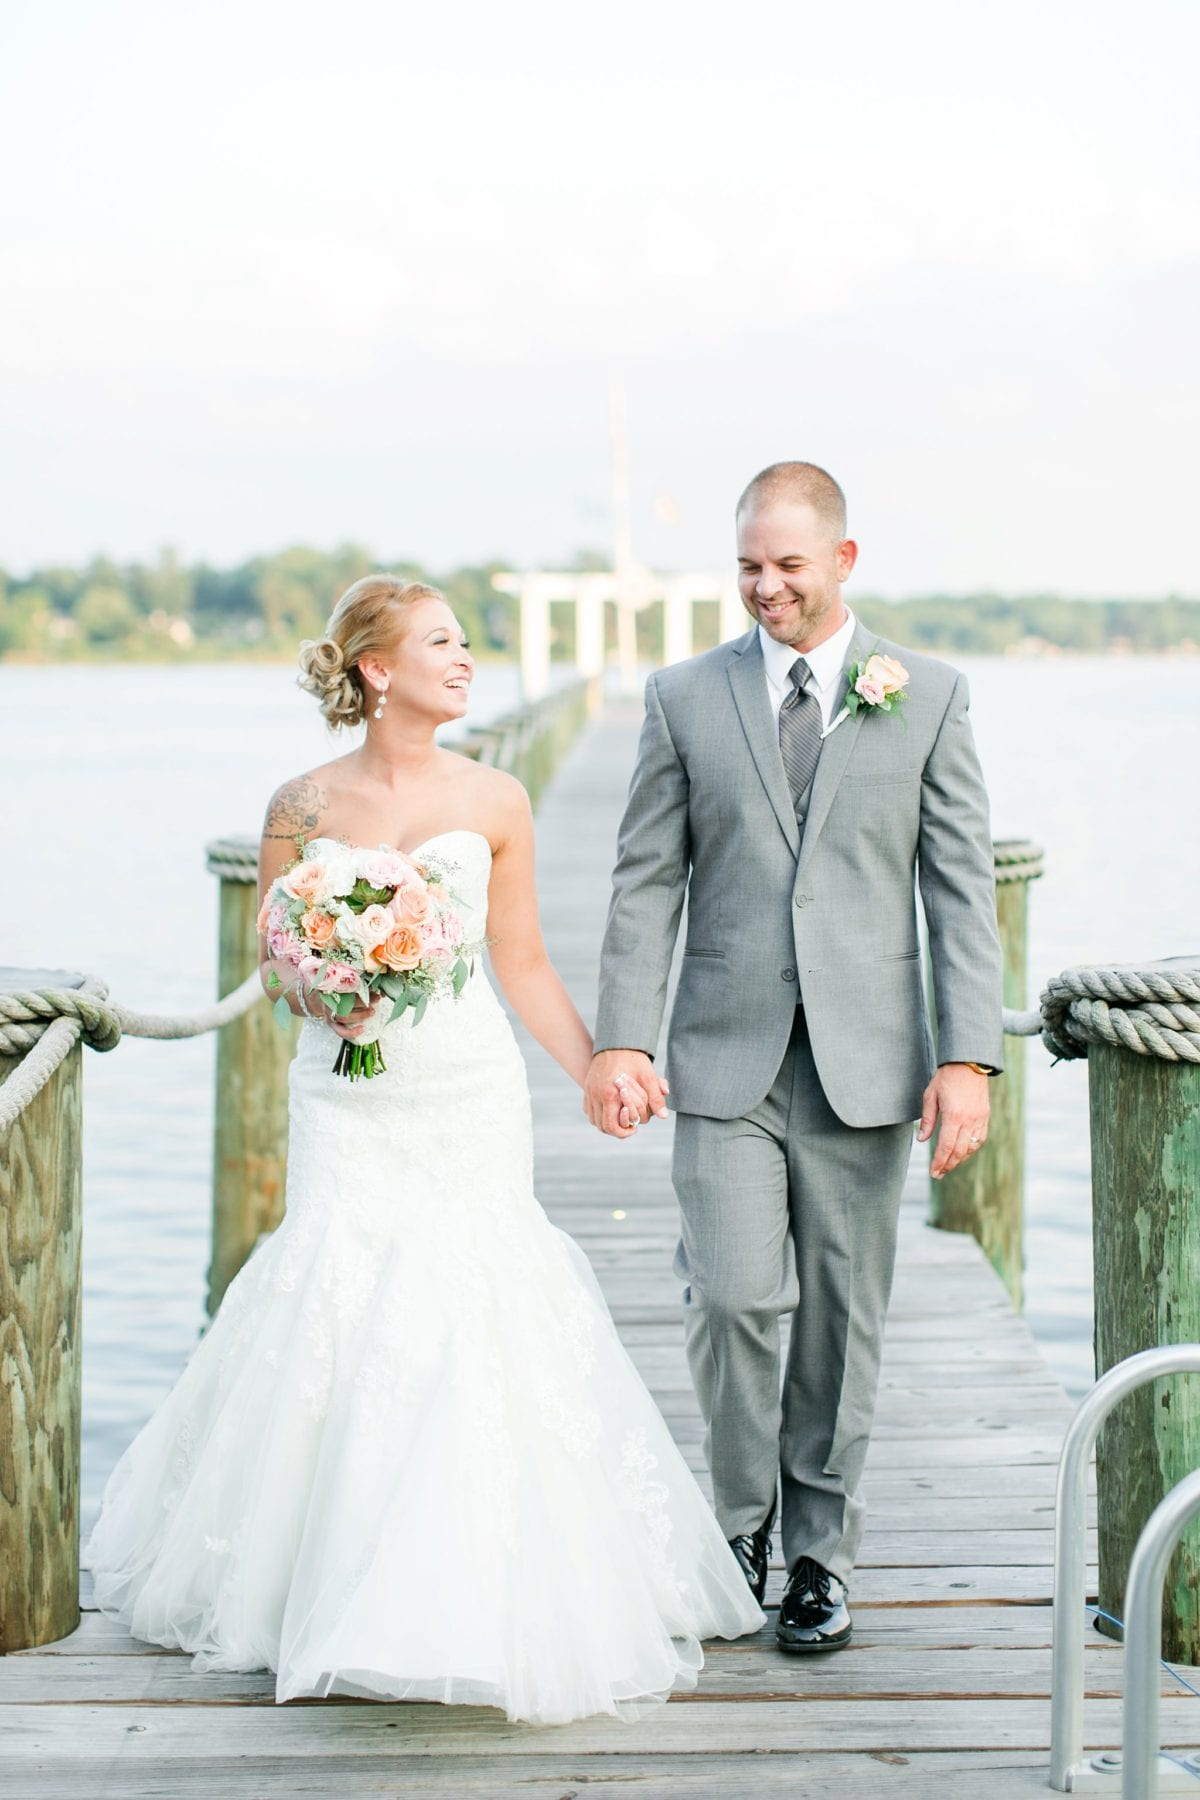 Waters Edge Wedding Photos Maryland Wedding Photographer Megan Kelsey Photography Katie & Conor-559.JPG